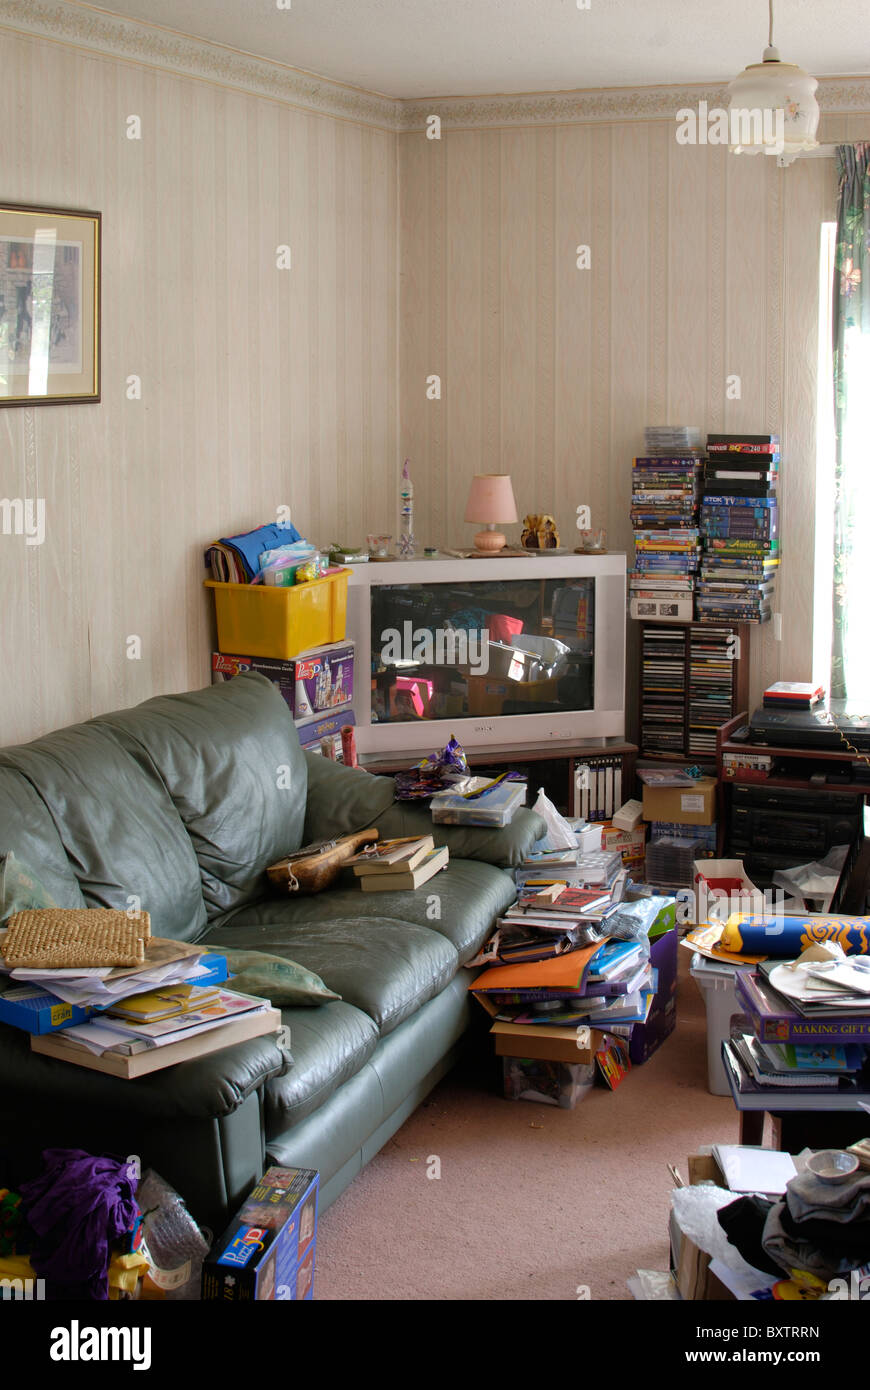 Very Messy And Untidy Cluttered Lounge Room With Books